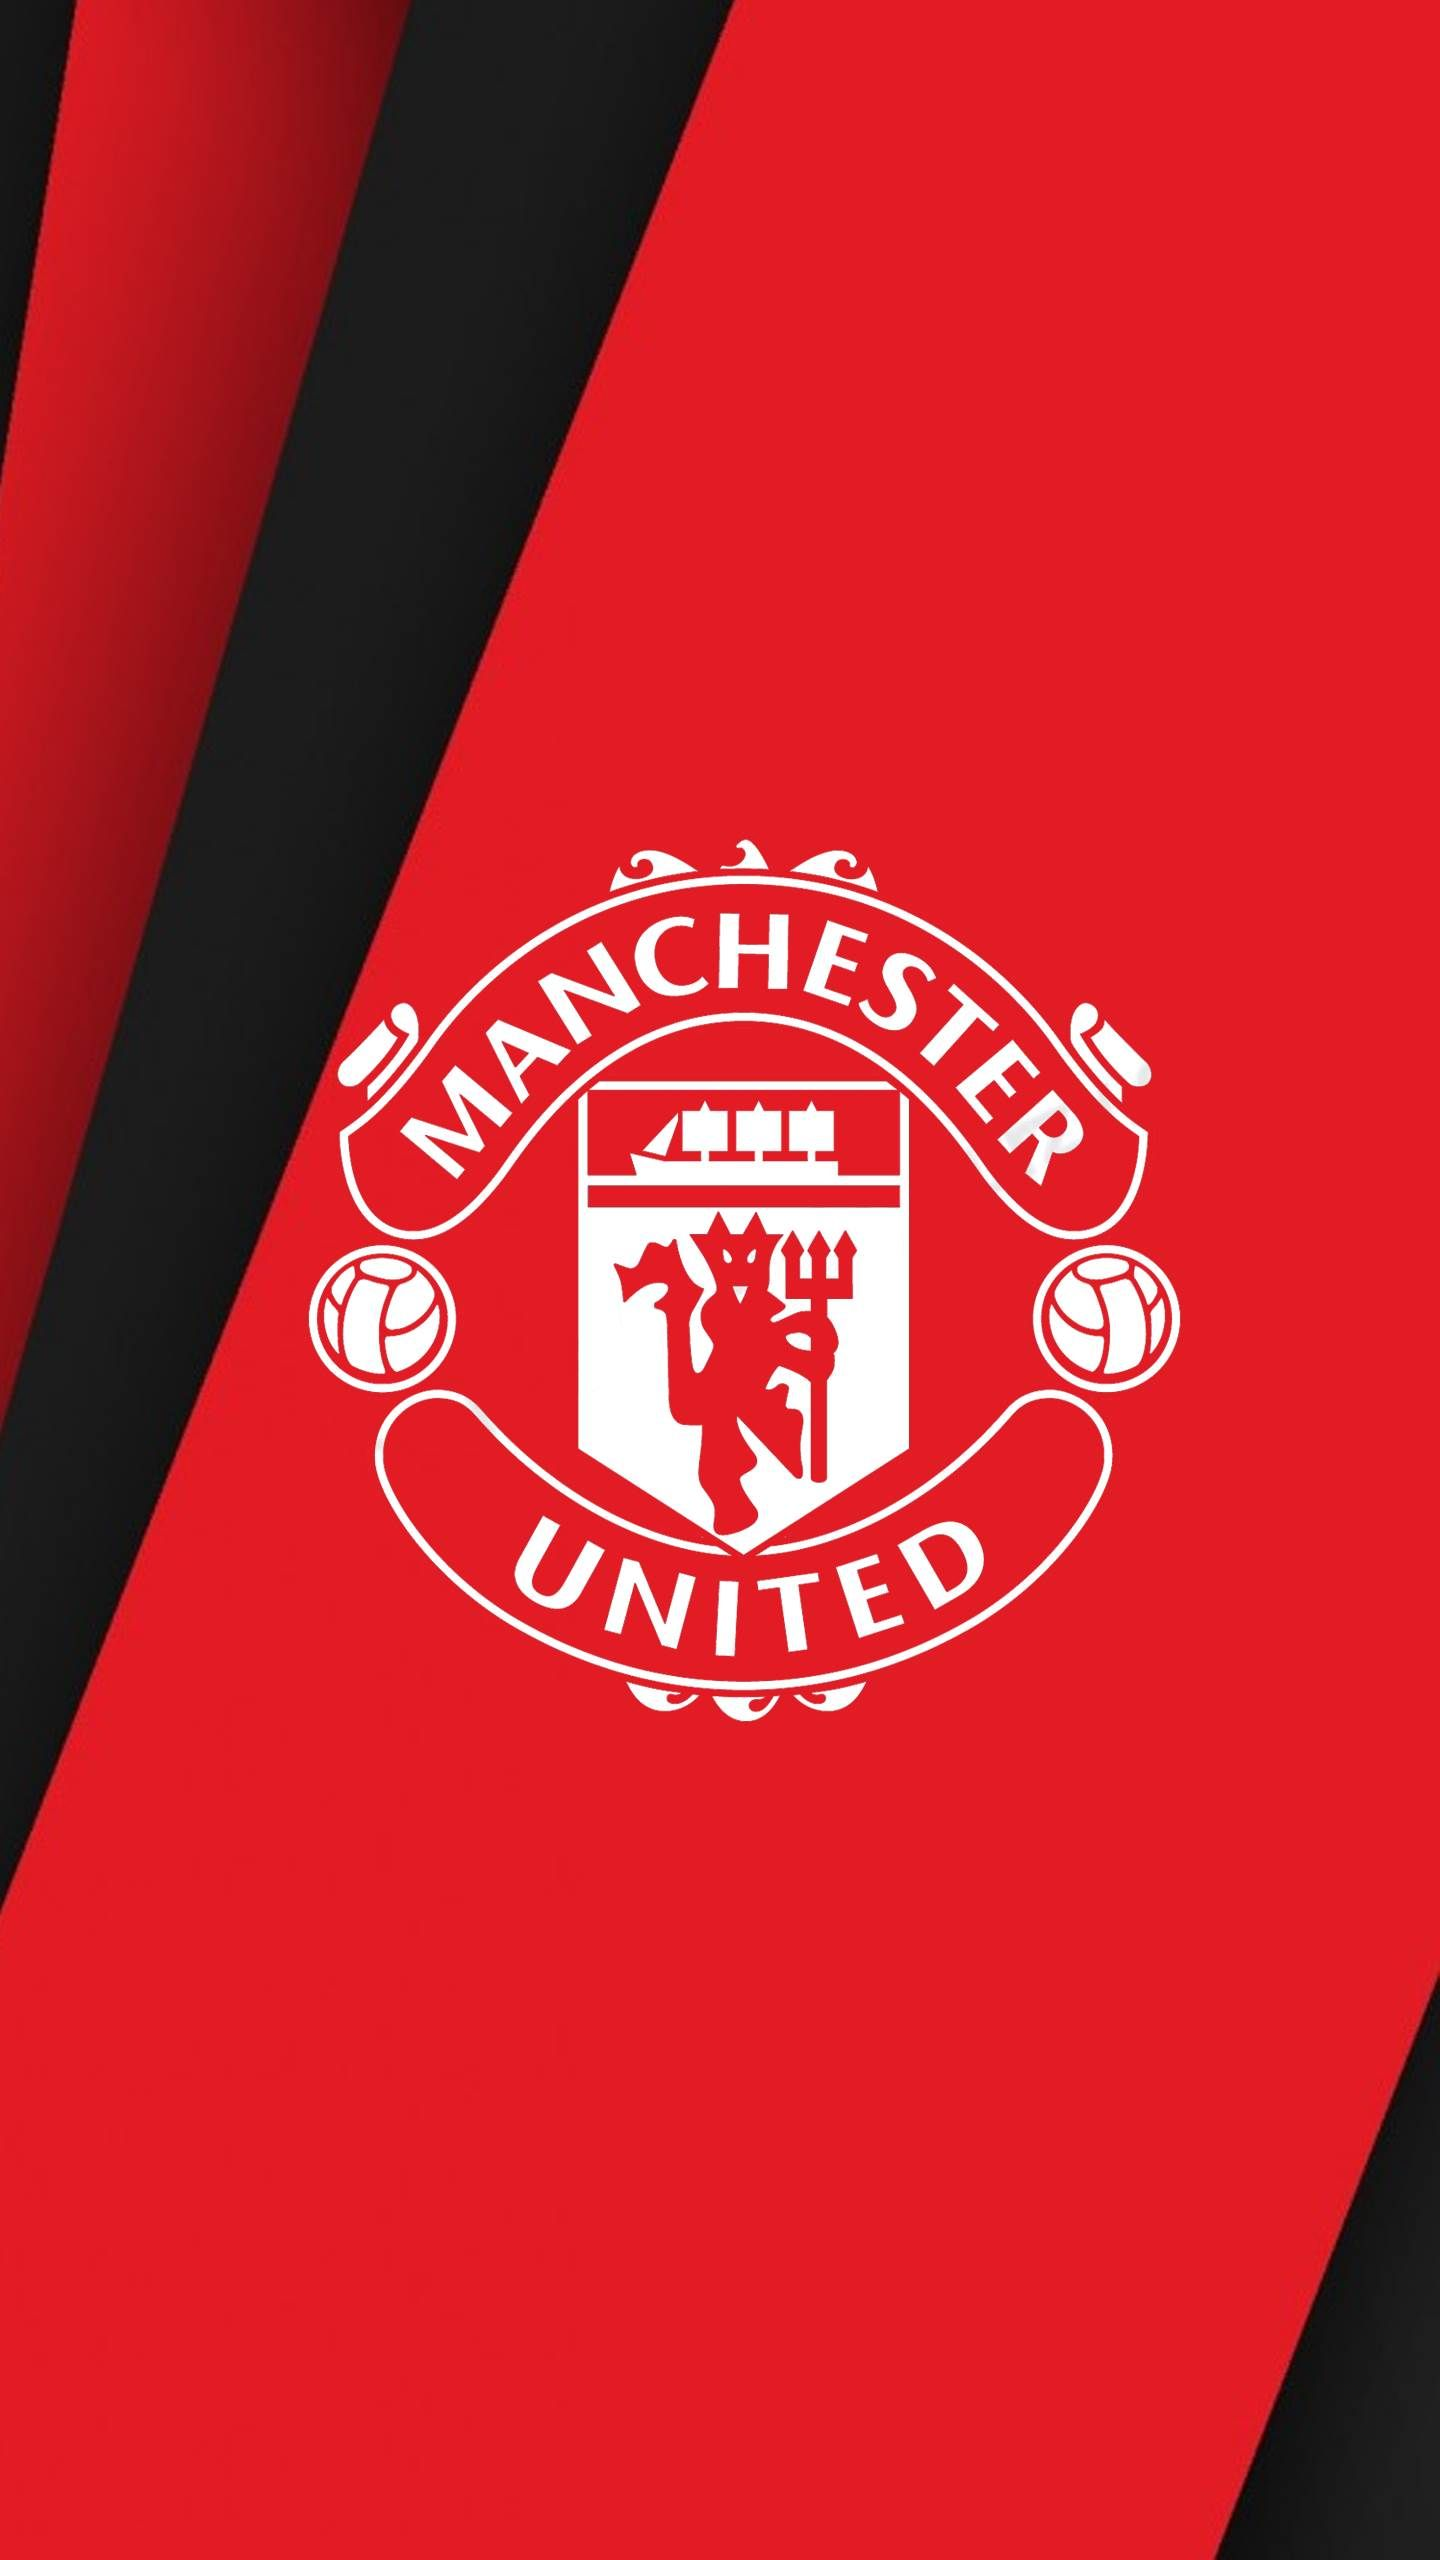 manchester united wallpapers hd desktop pictures 48 guanchaoge